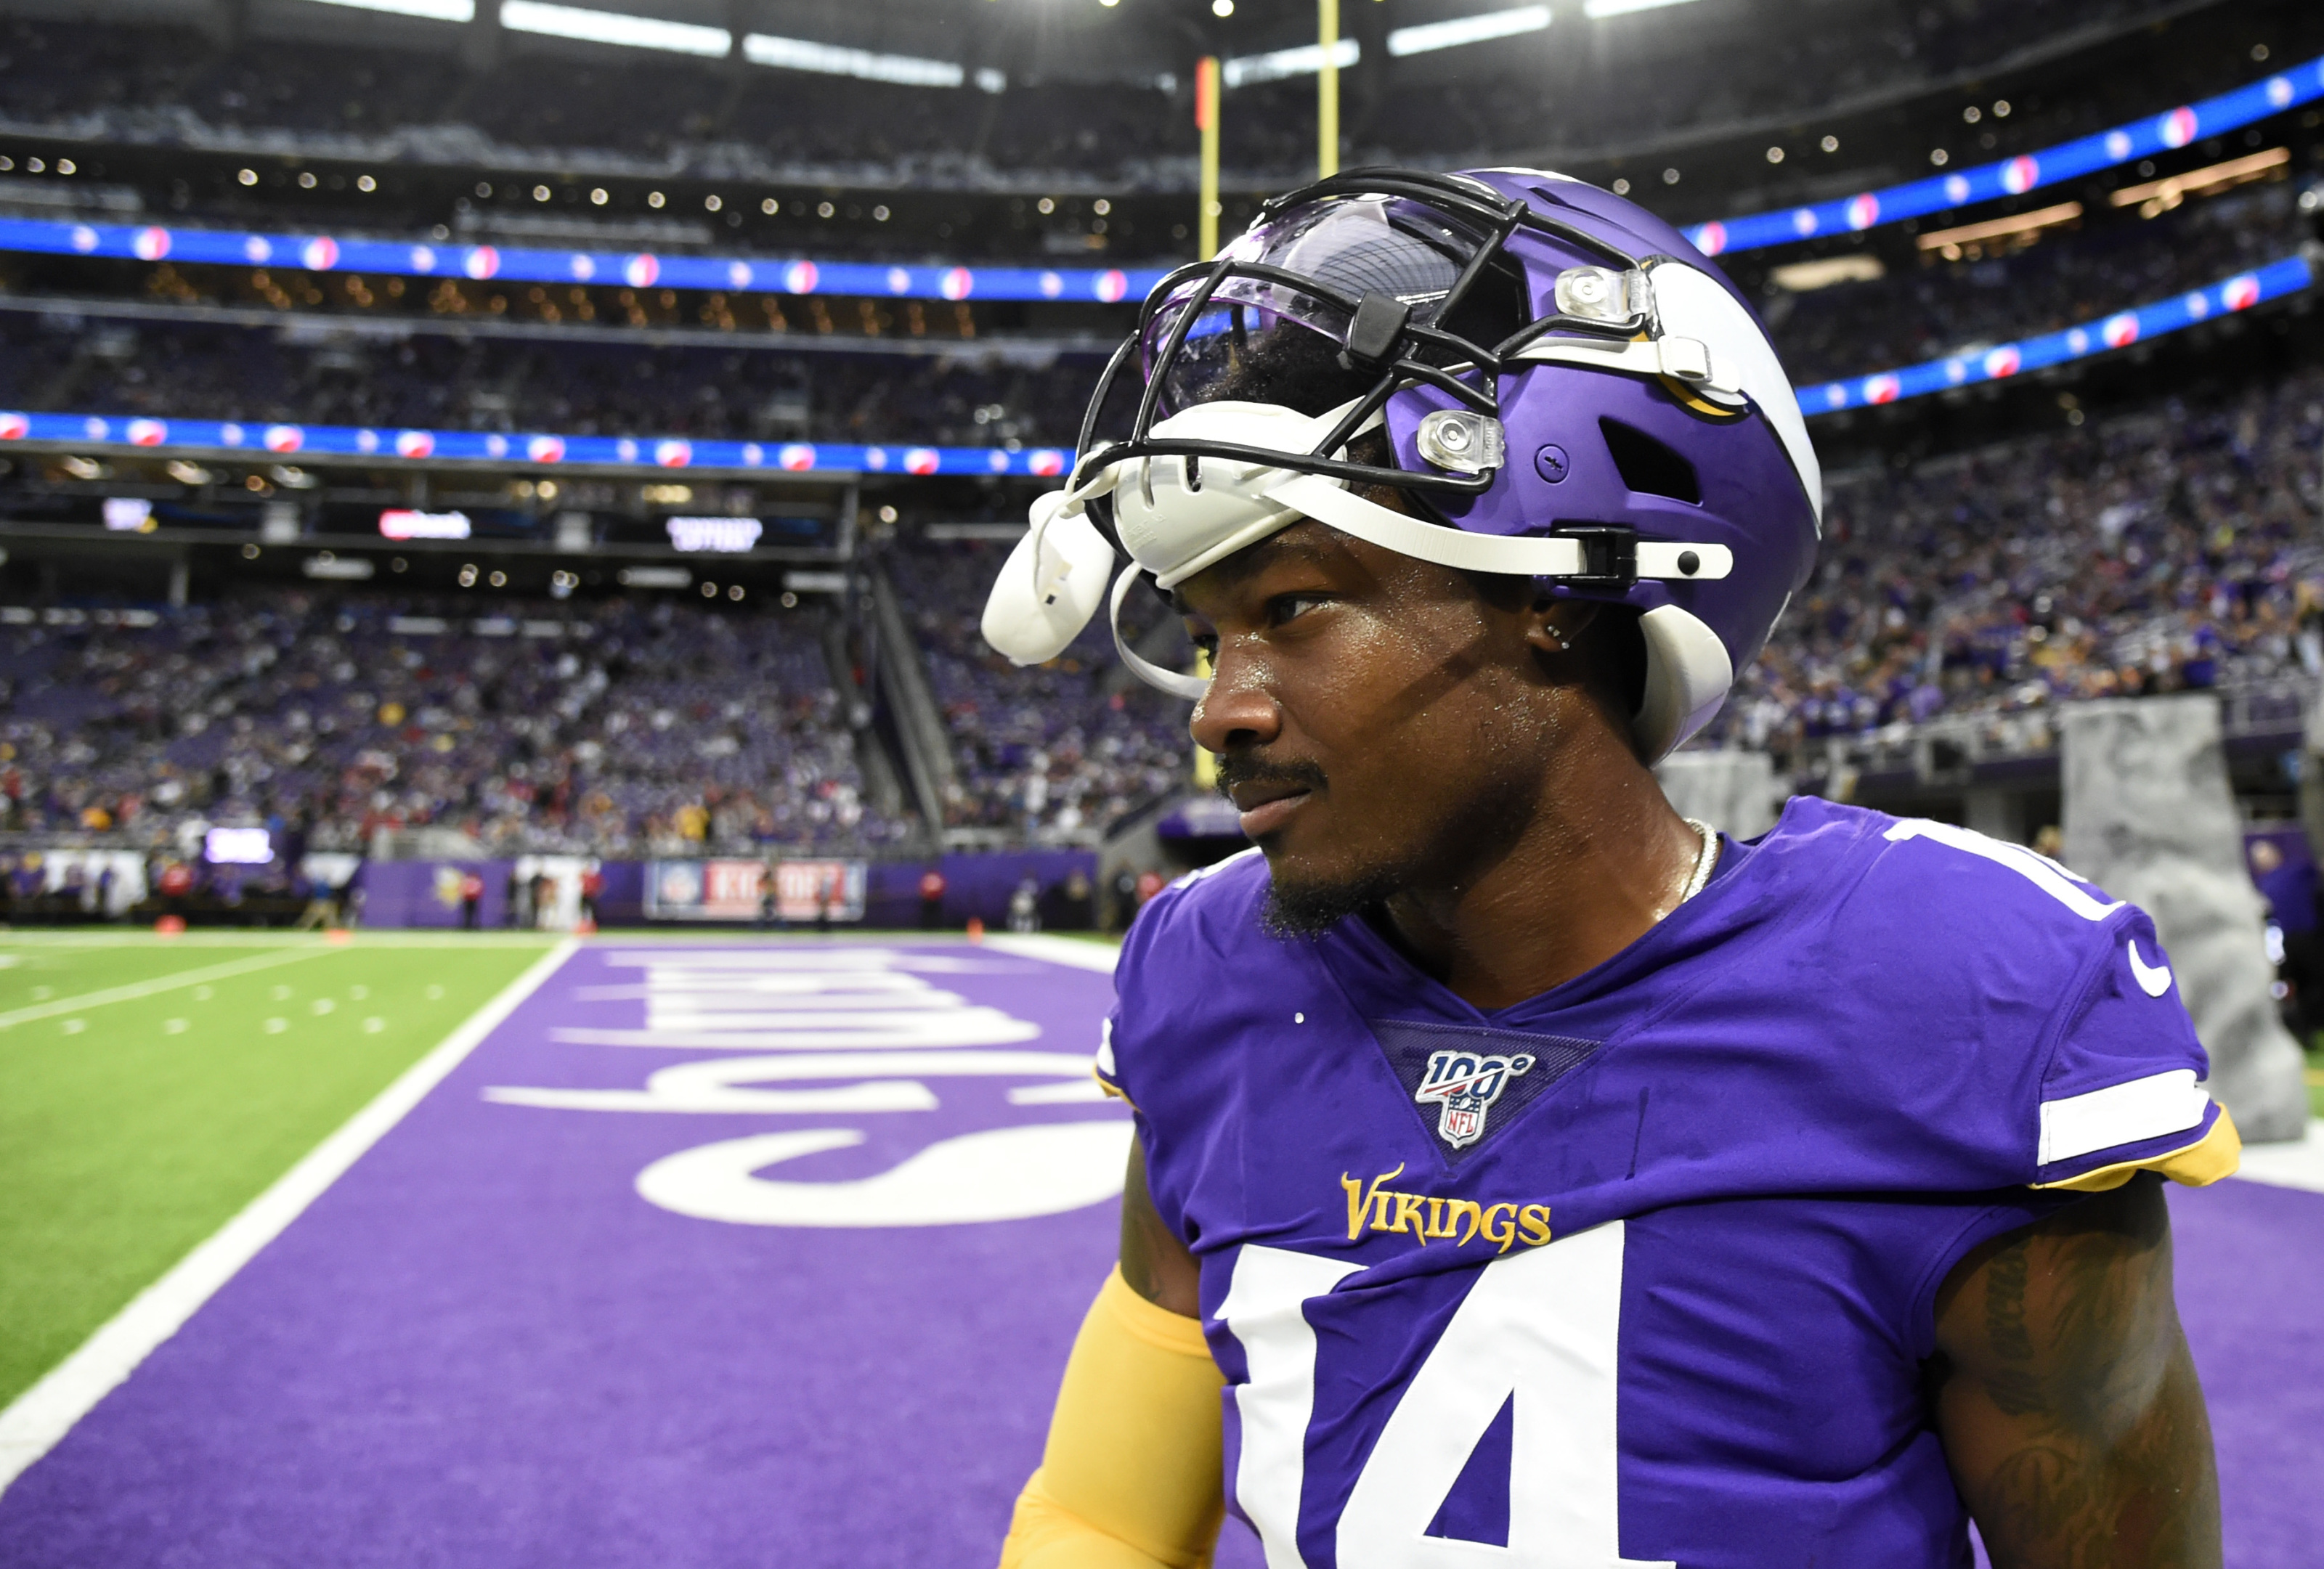 Trading Stefon Diggs would be tremendously stupid